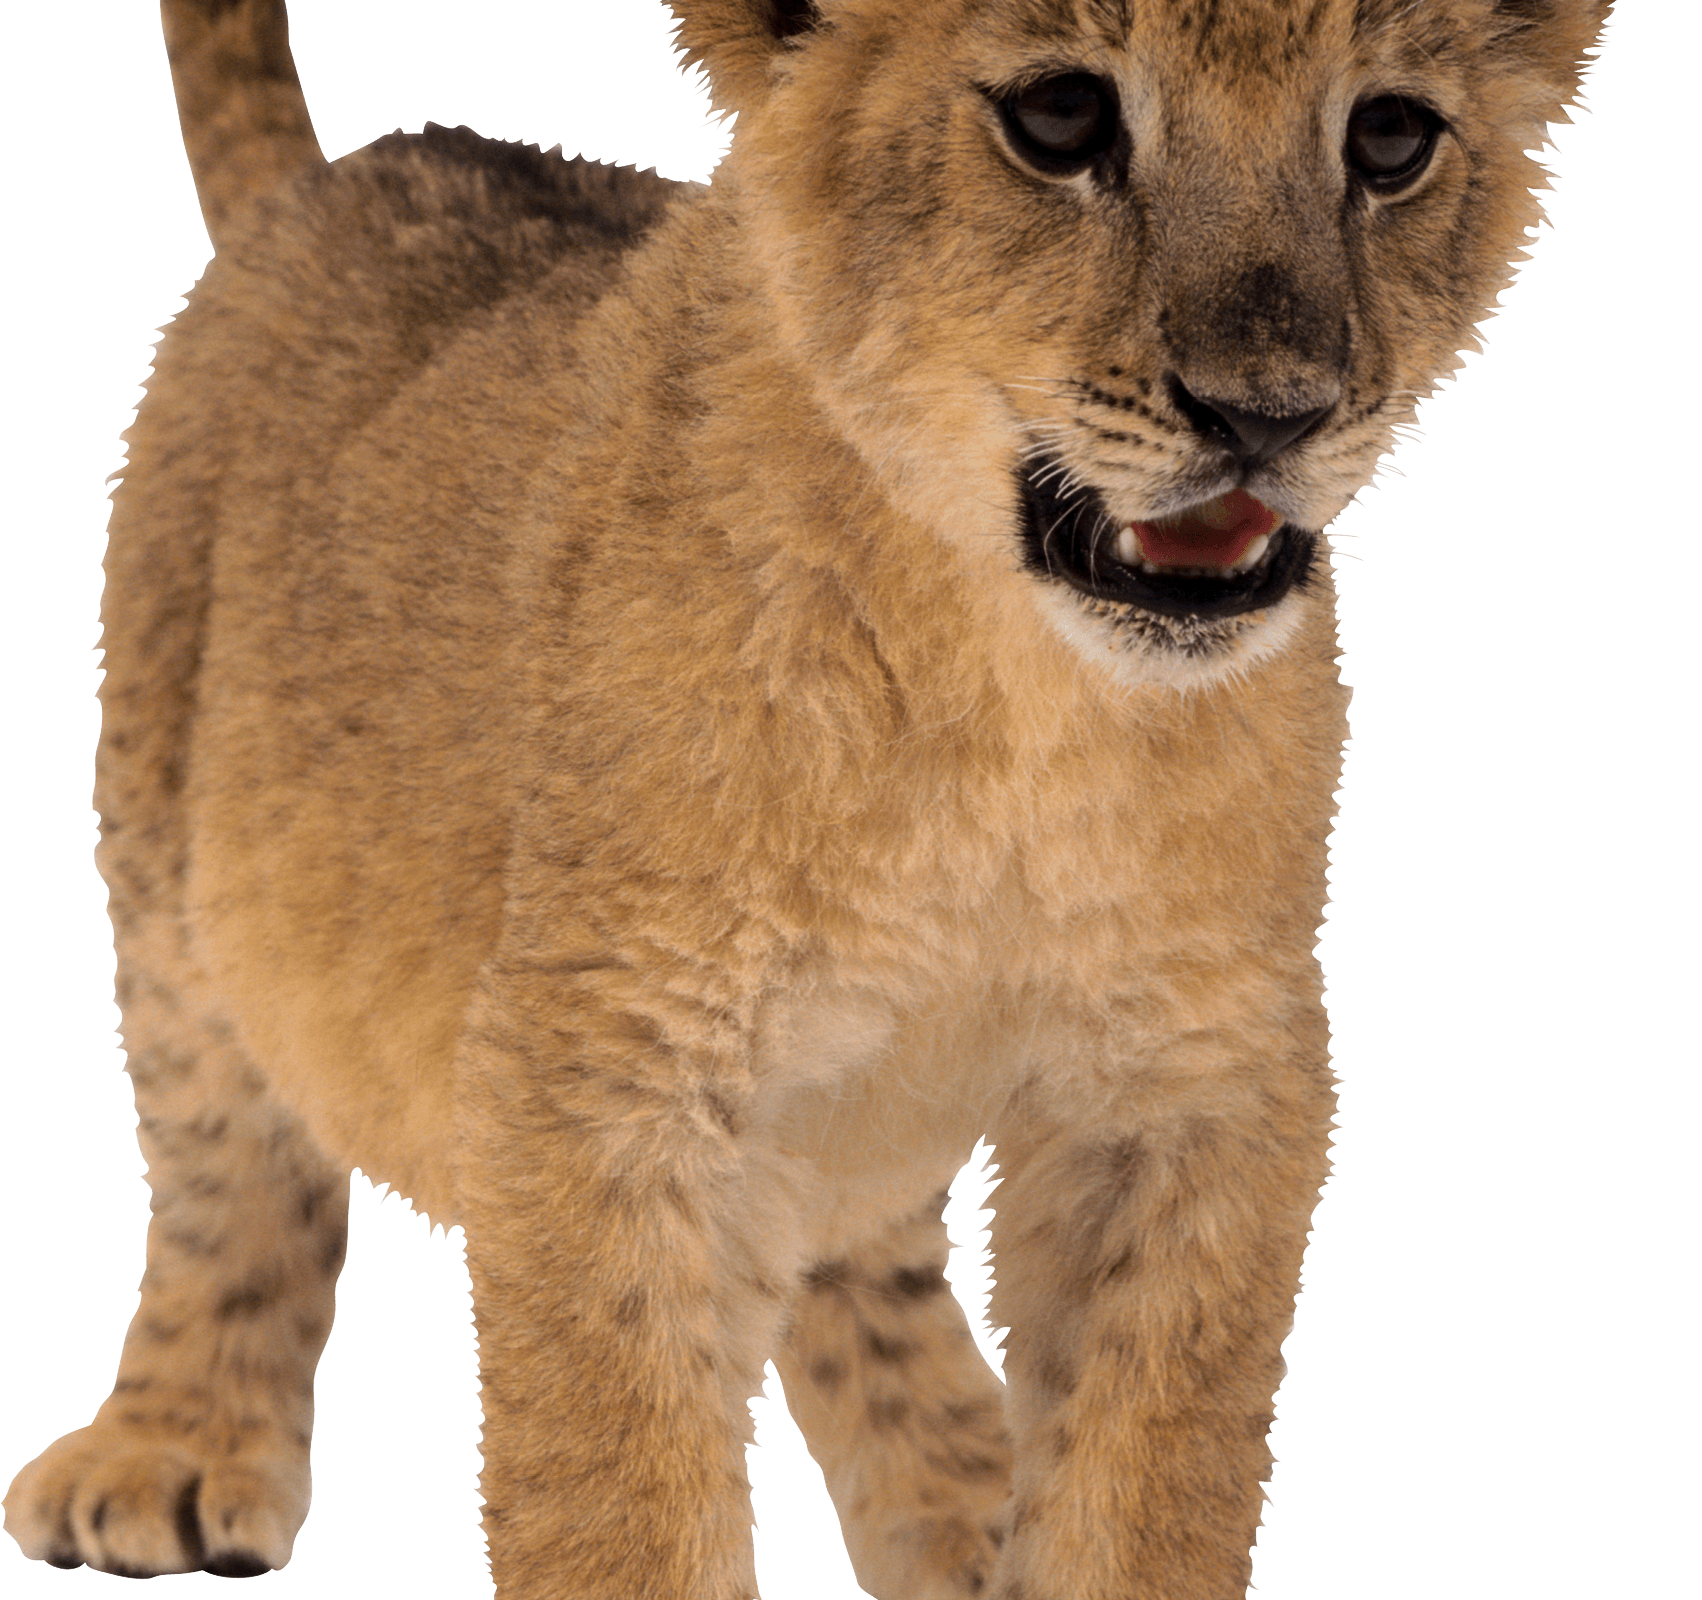 Baby lion png. Download hd wallpaper for